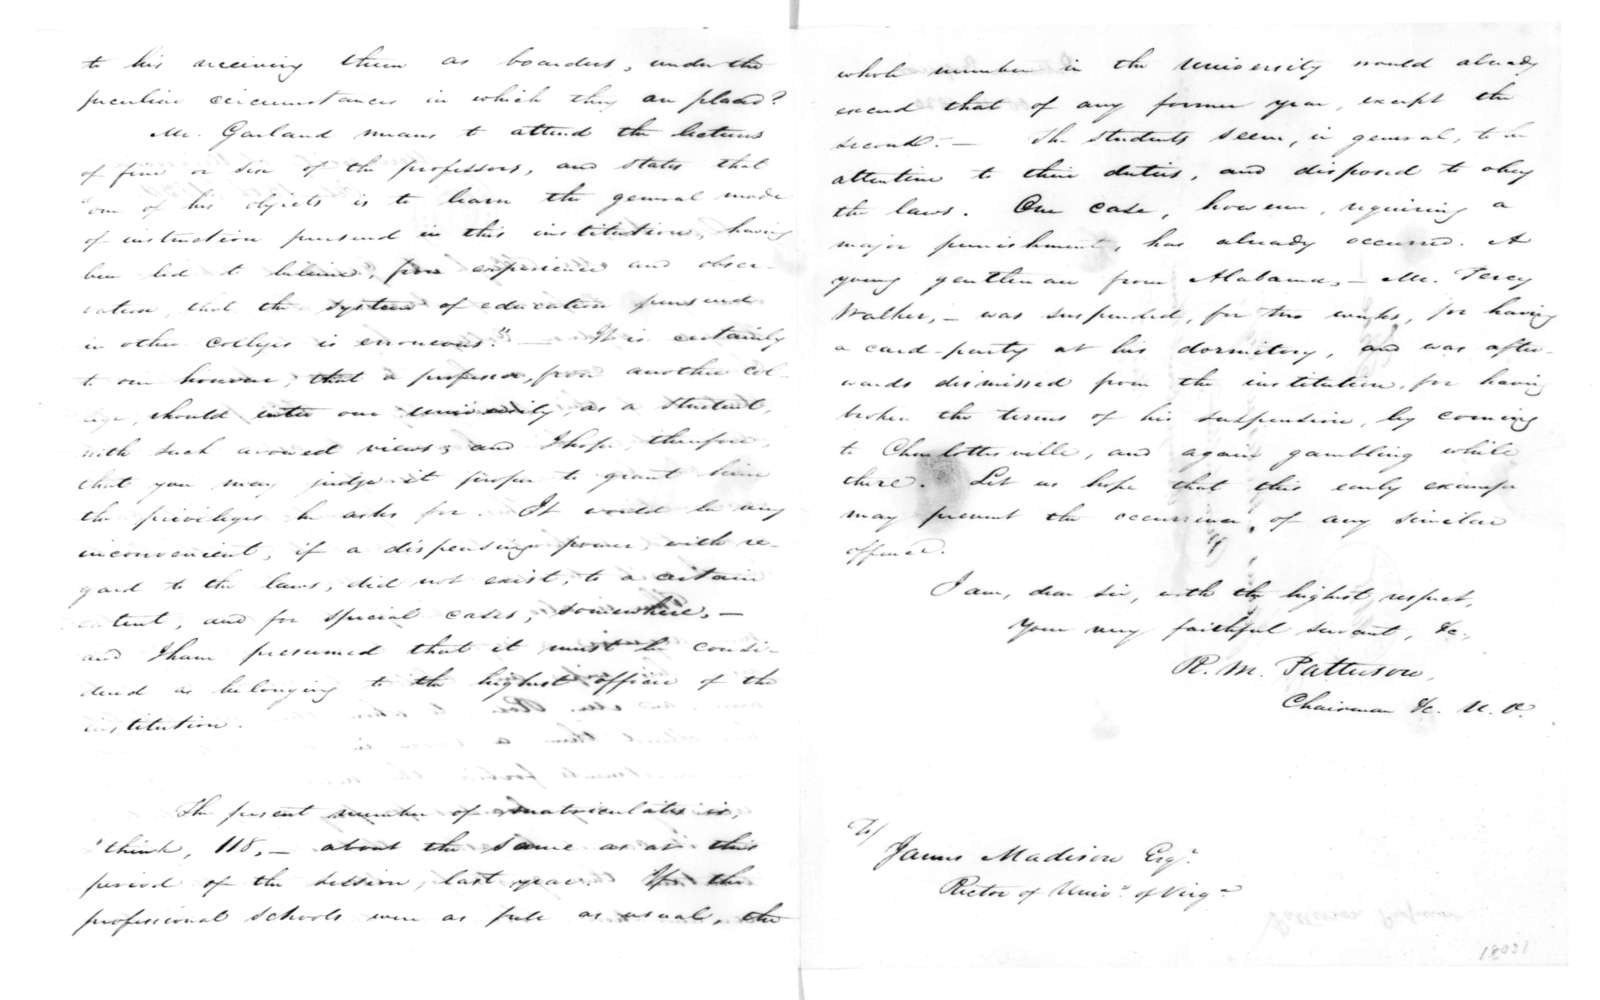 Richard M. Patterson to James Madison, October 15, 1830.